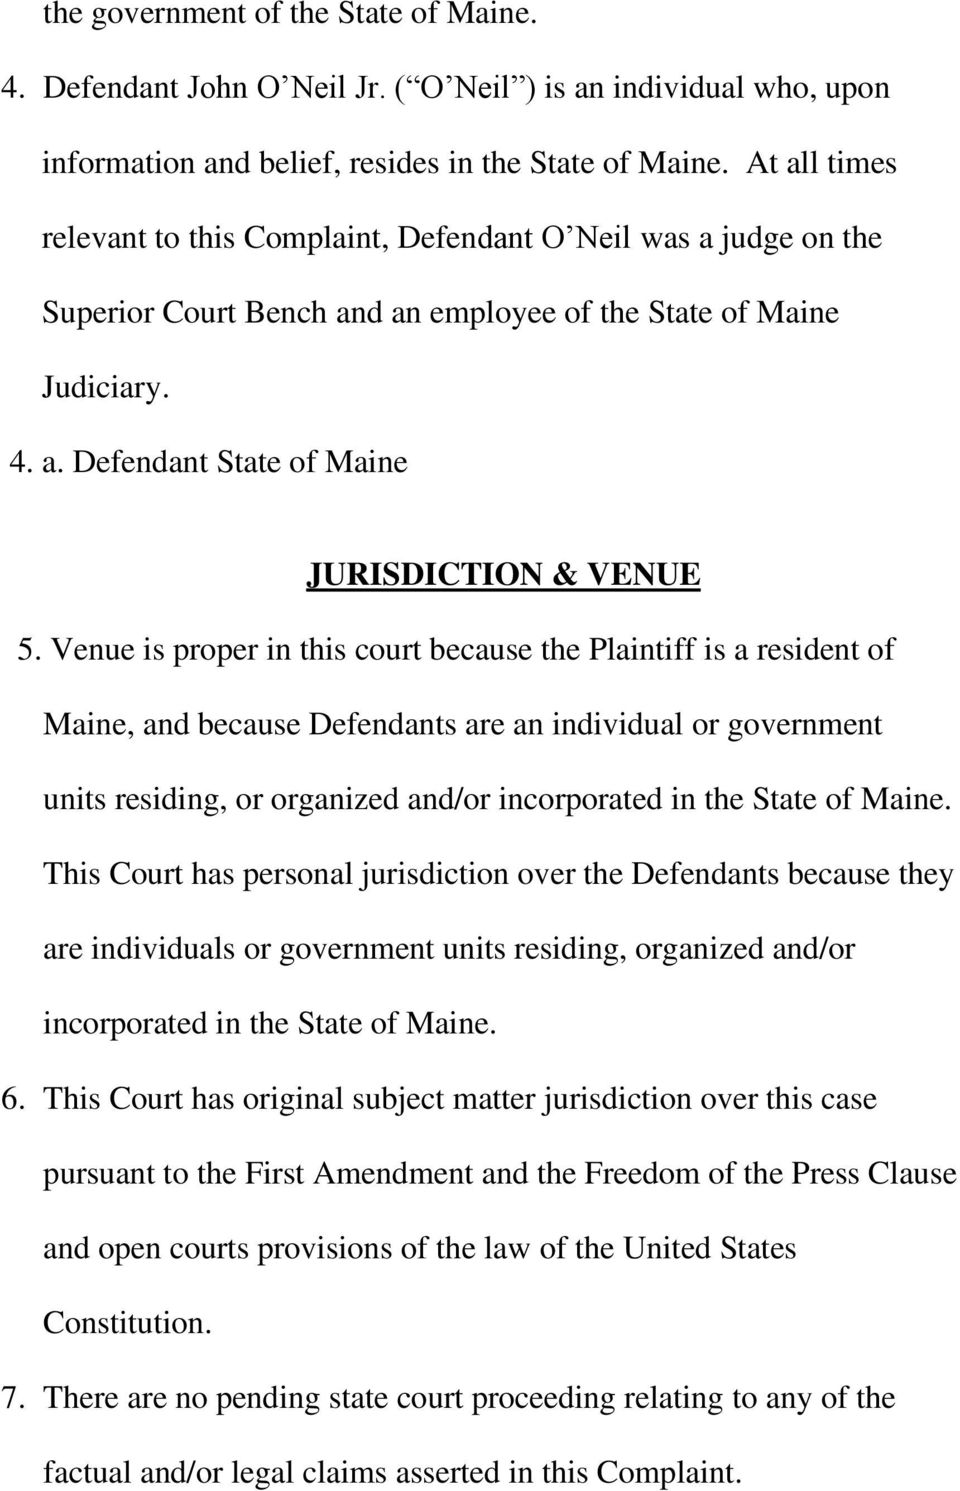 Venue is proper in this court because the Plaintiff is a resident of Maine, and because Defendants are an individual or government units residing, or organized and/or incorporated in the State of